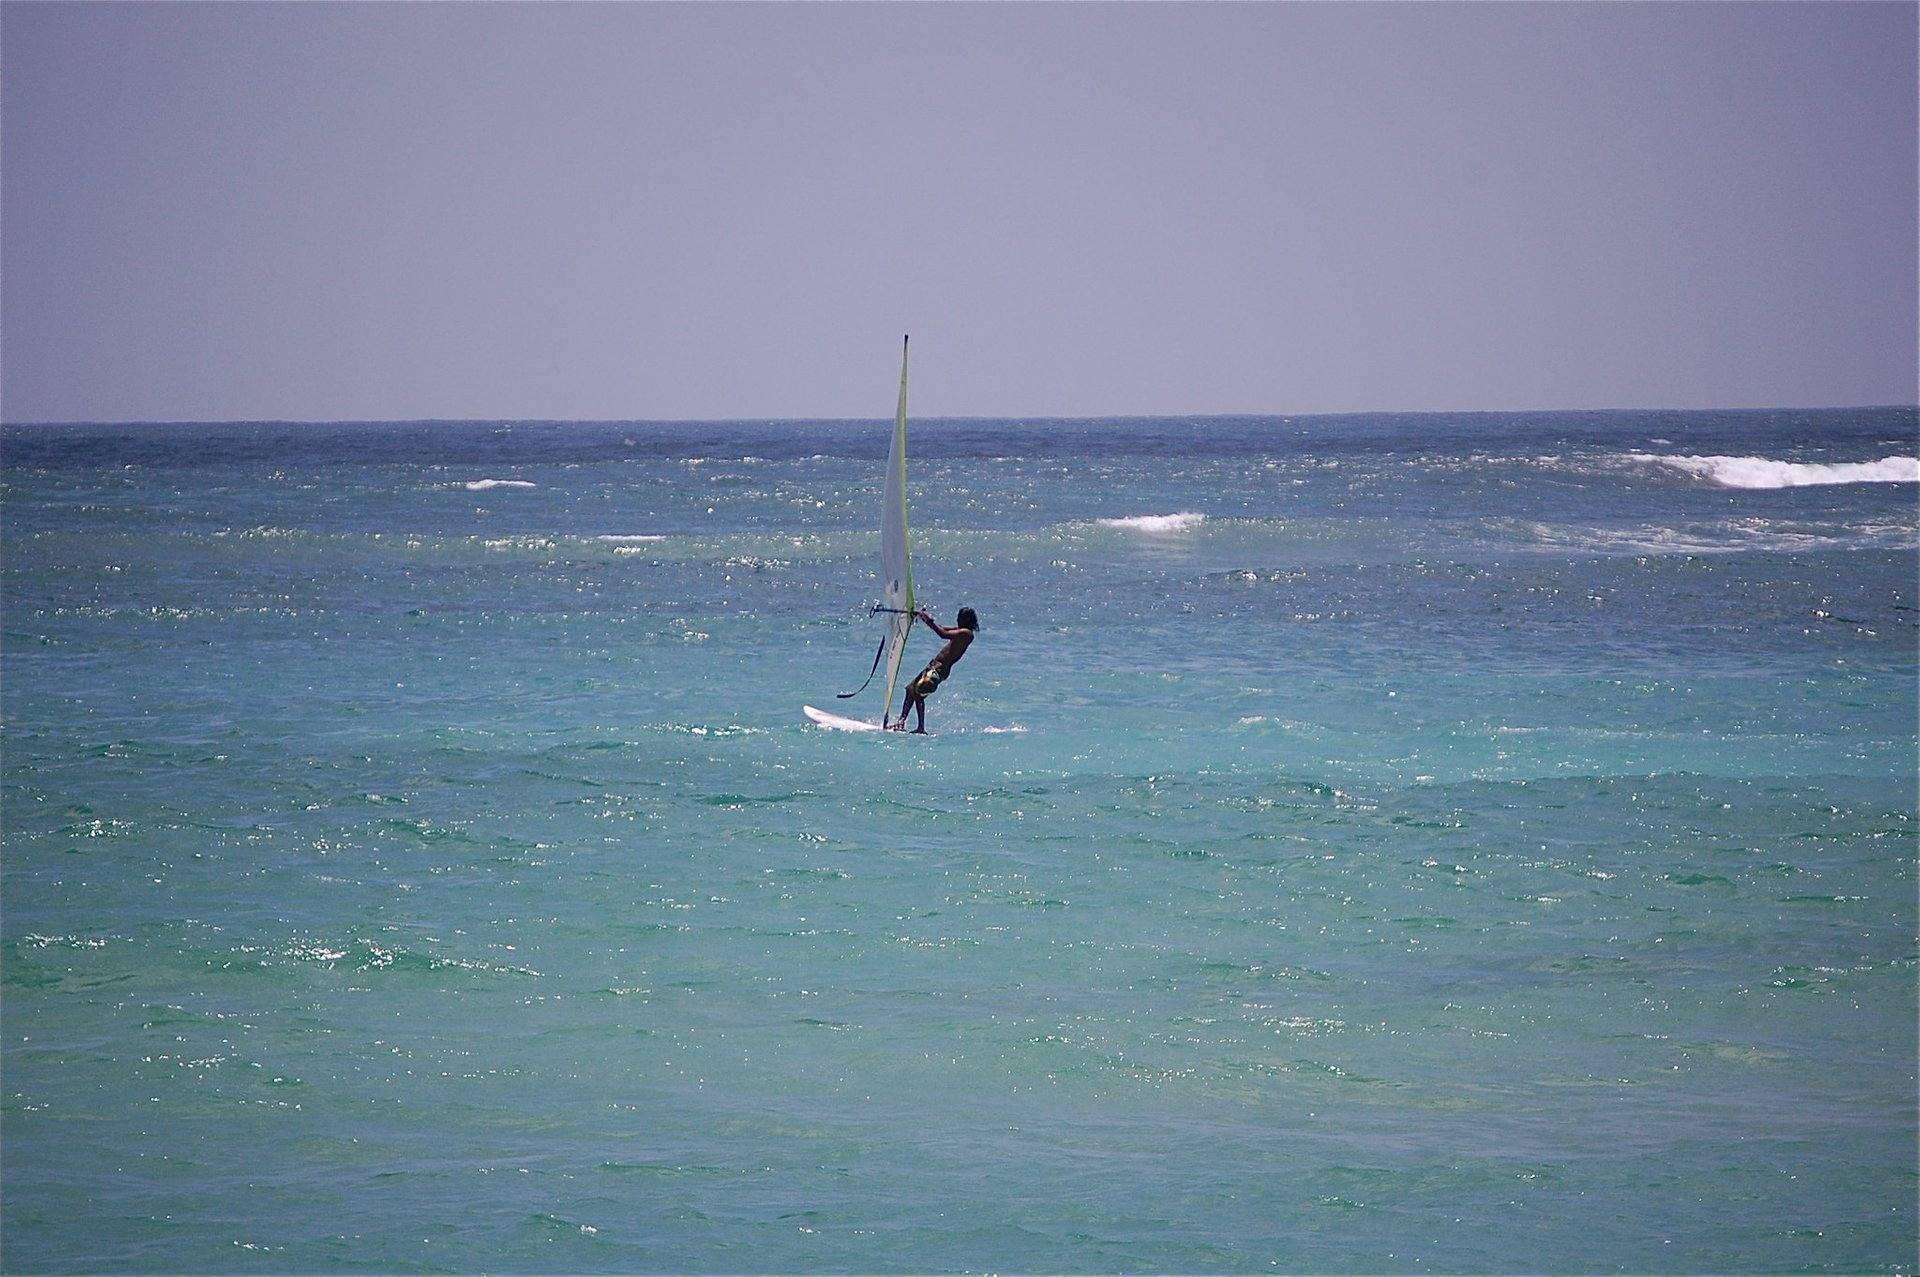 Windsurfing off the coast of southwestern Sri Lanka 2020